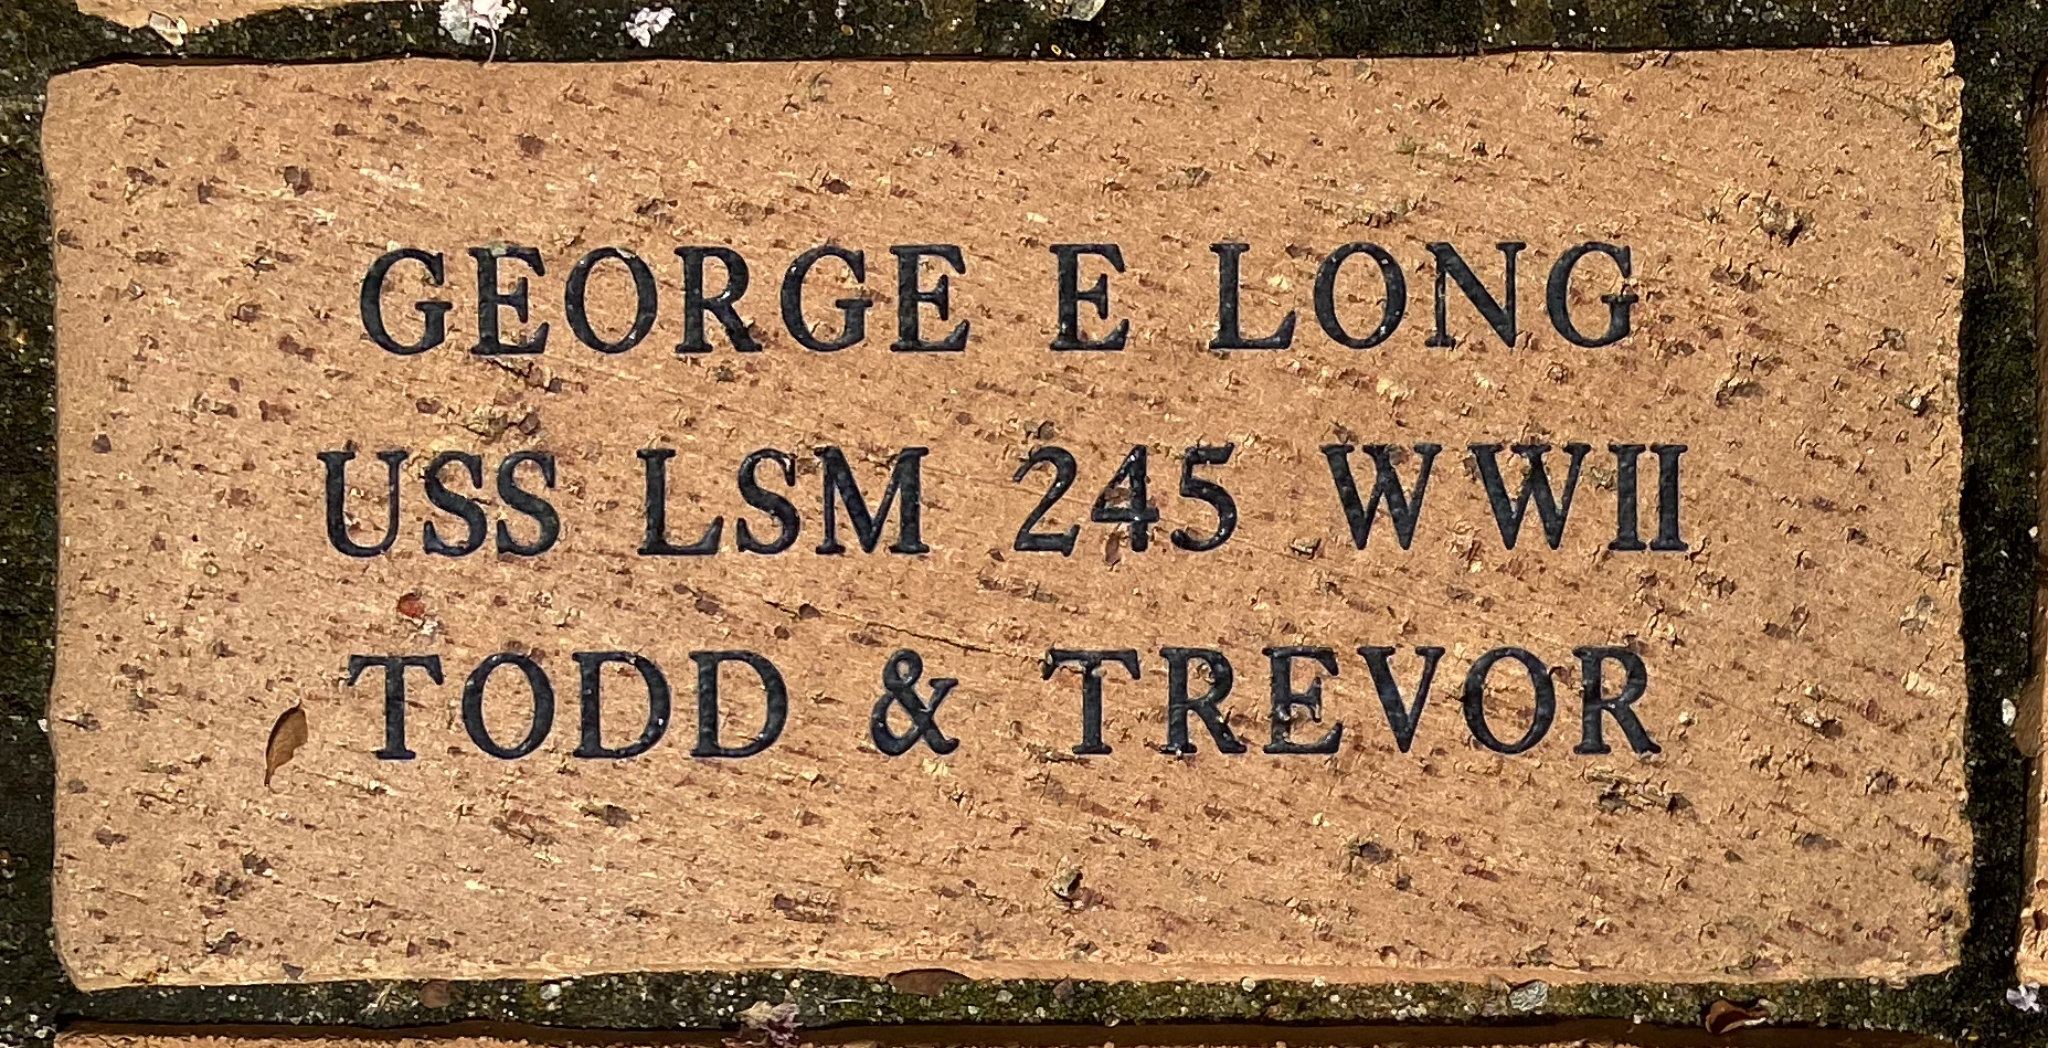 GEORGE E LONG USS LSM 245 WWII TODD & TREVOR